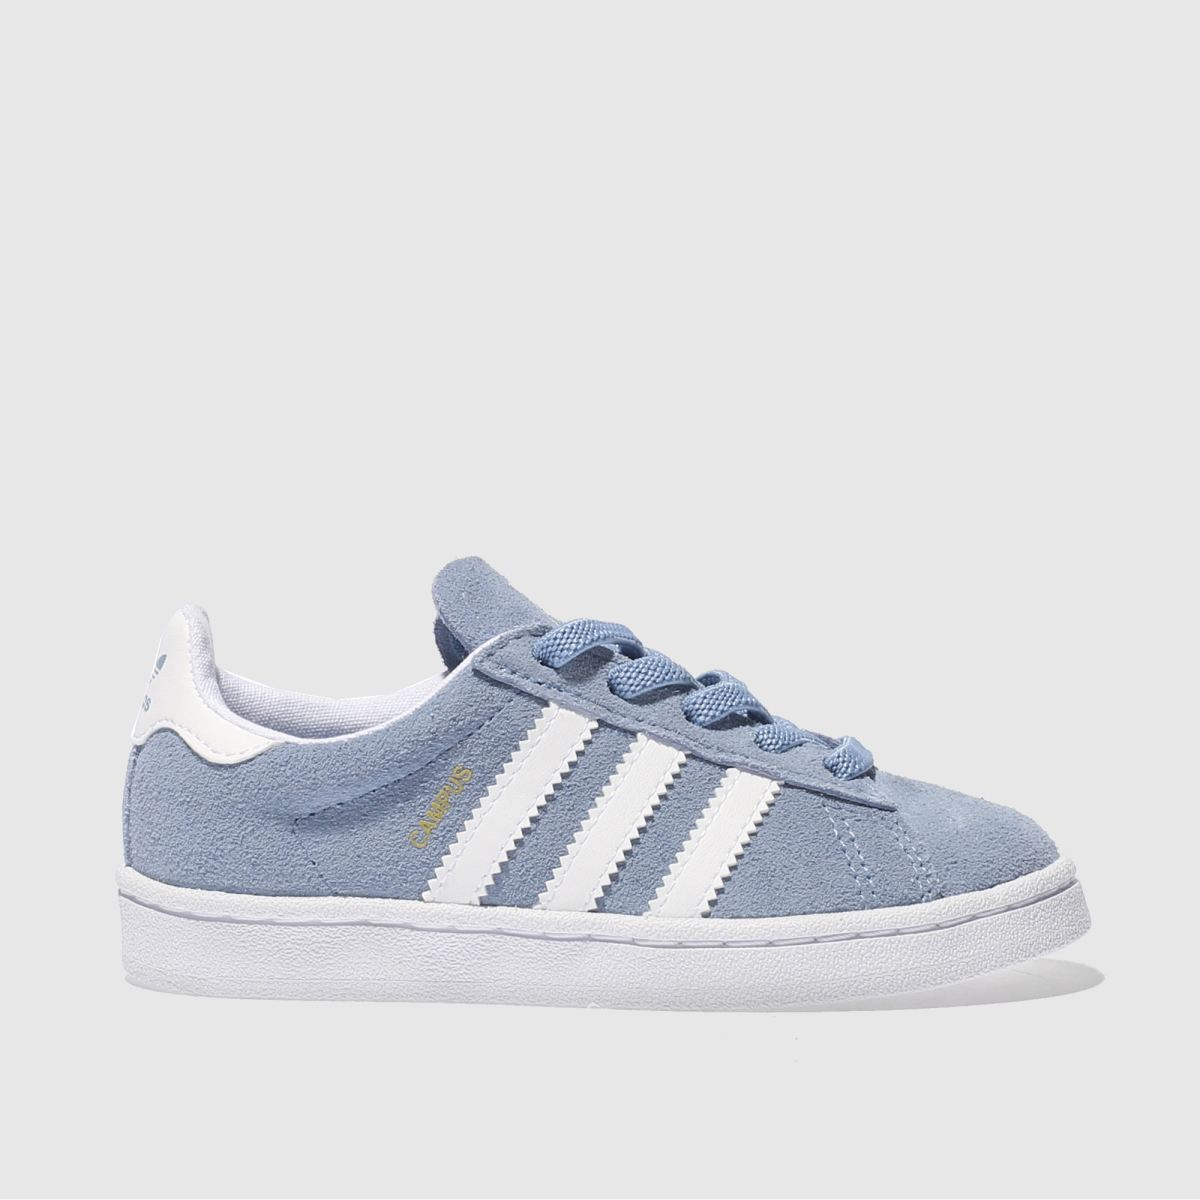 Adidas Pale Blue Campus Unisex Toddler Toddler